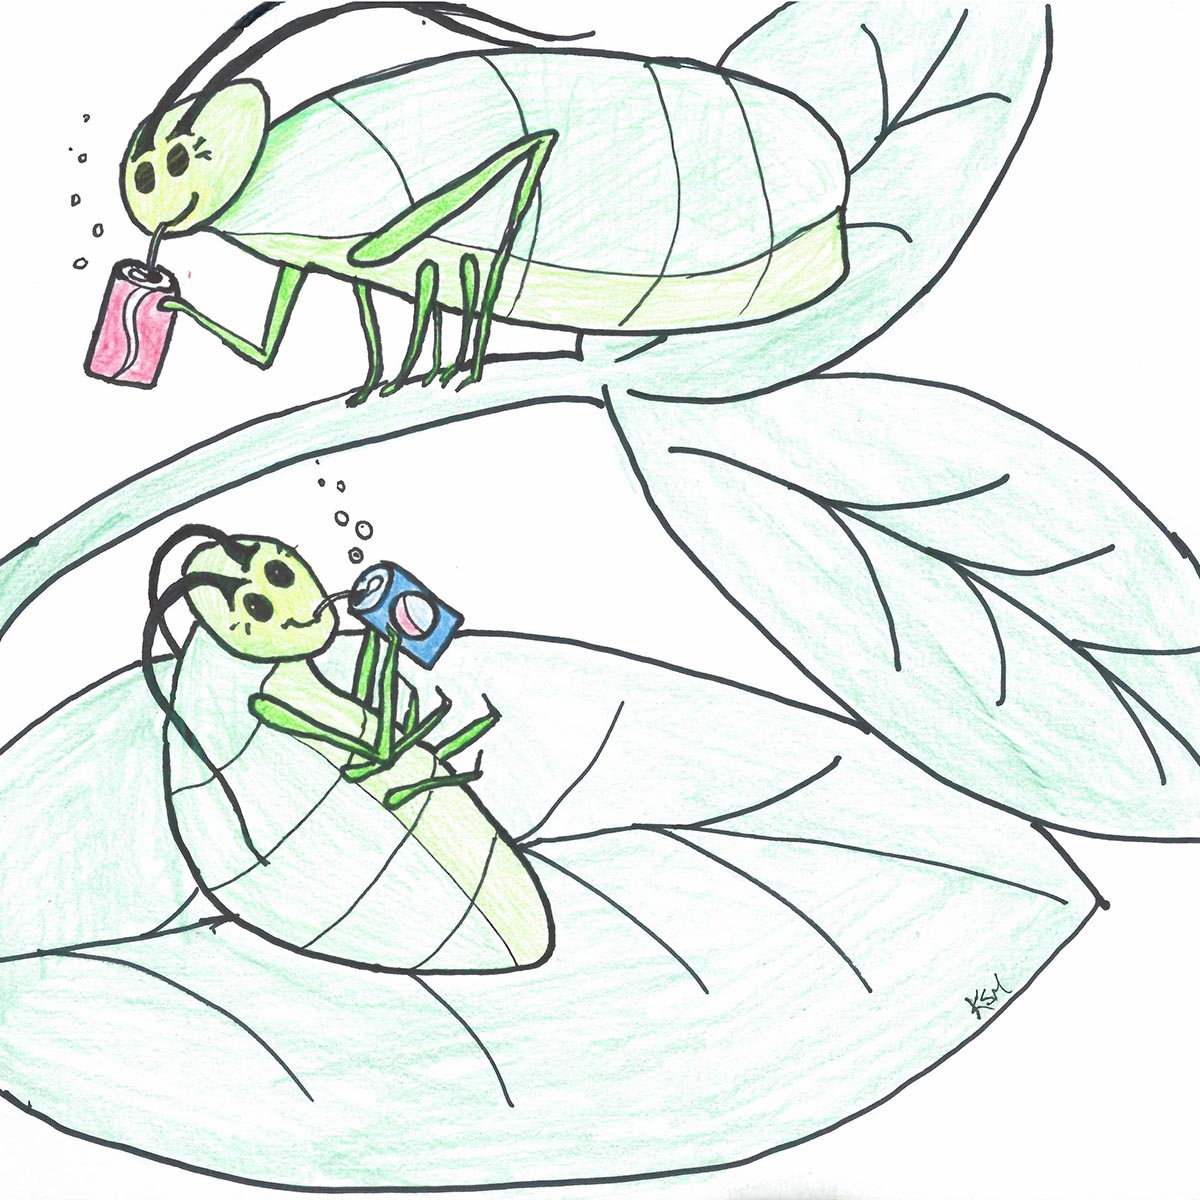 aphids balance their diets by rebuilding plant amino acids Dietary Law aphids enjoying their junk food diets credit kelli monce